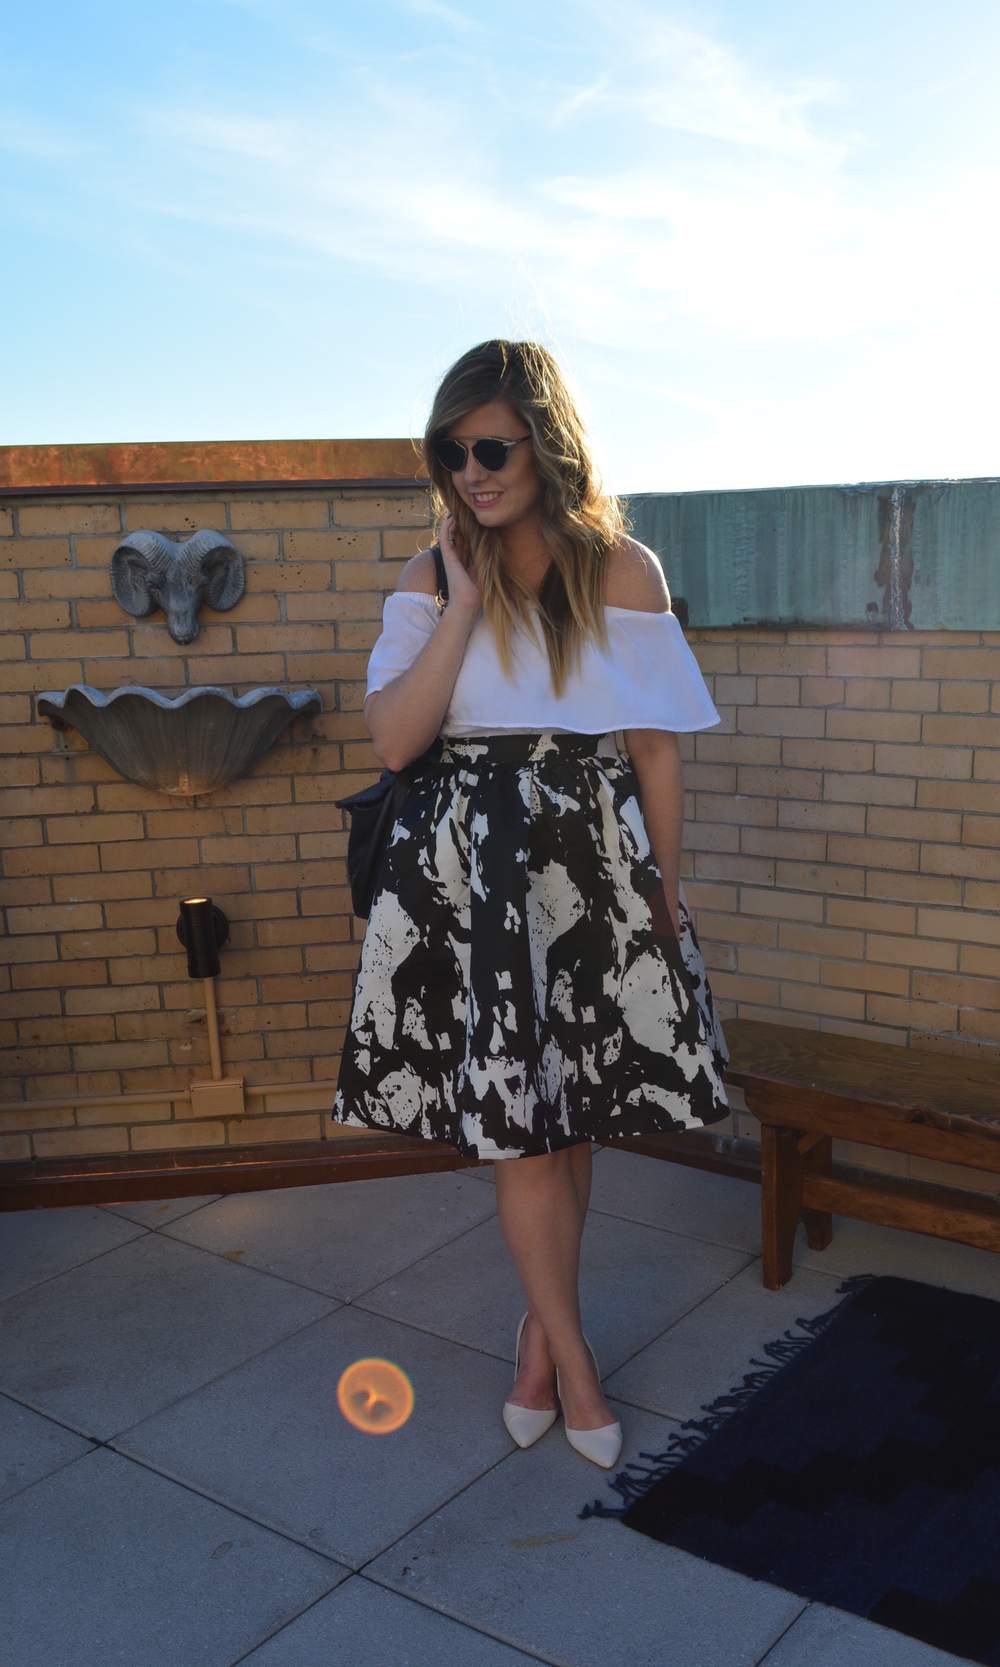 Midi skirt outfit on Sophisticaited